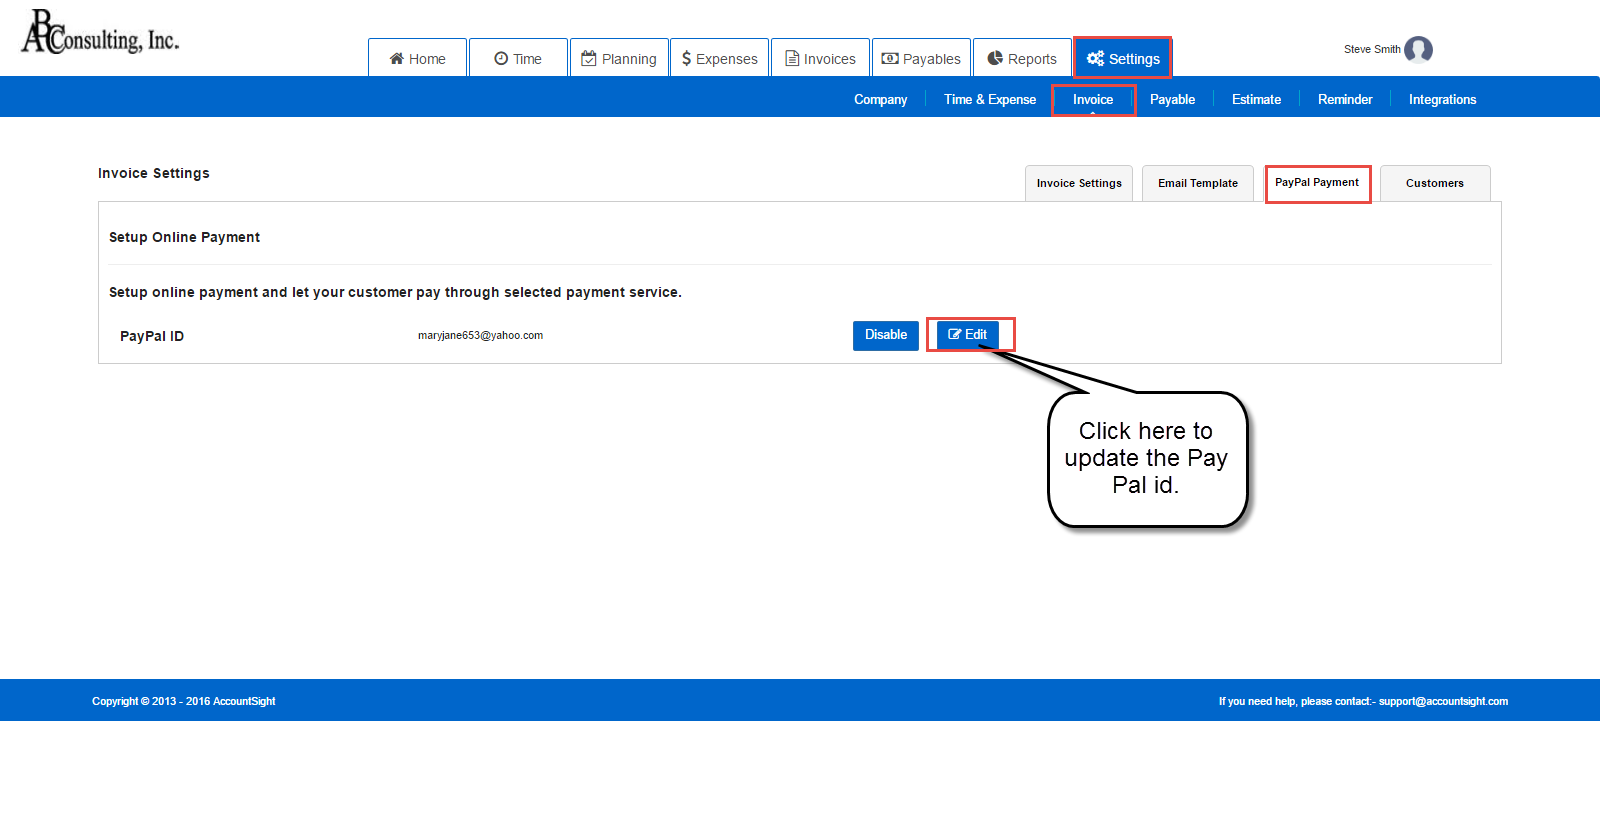 Configure PayPal ID in AccountSight time and billing software